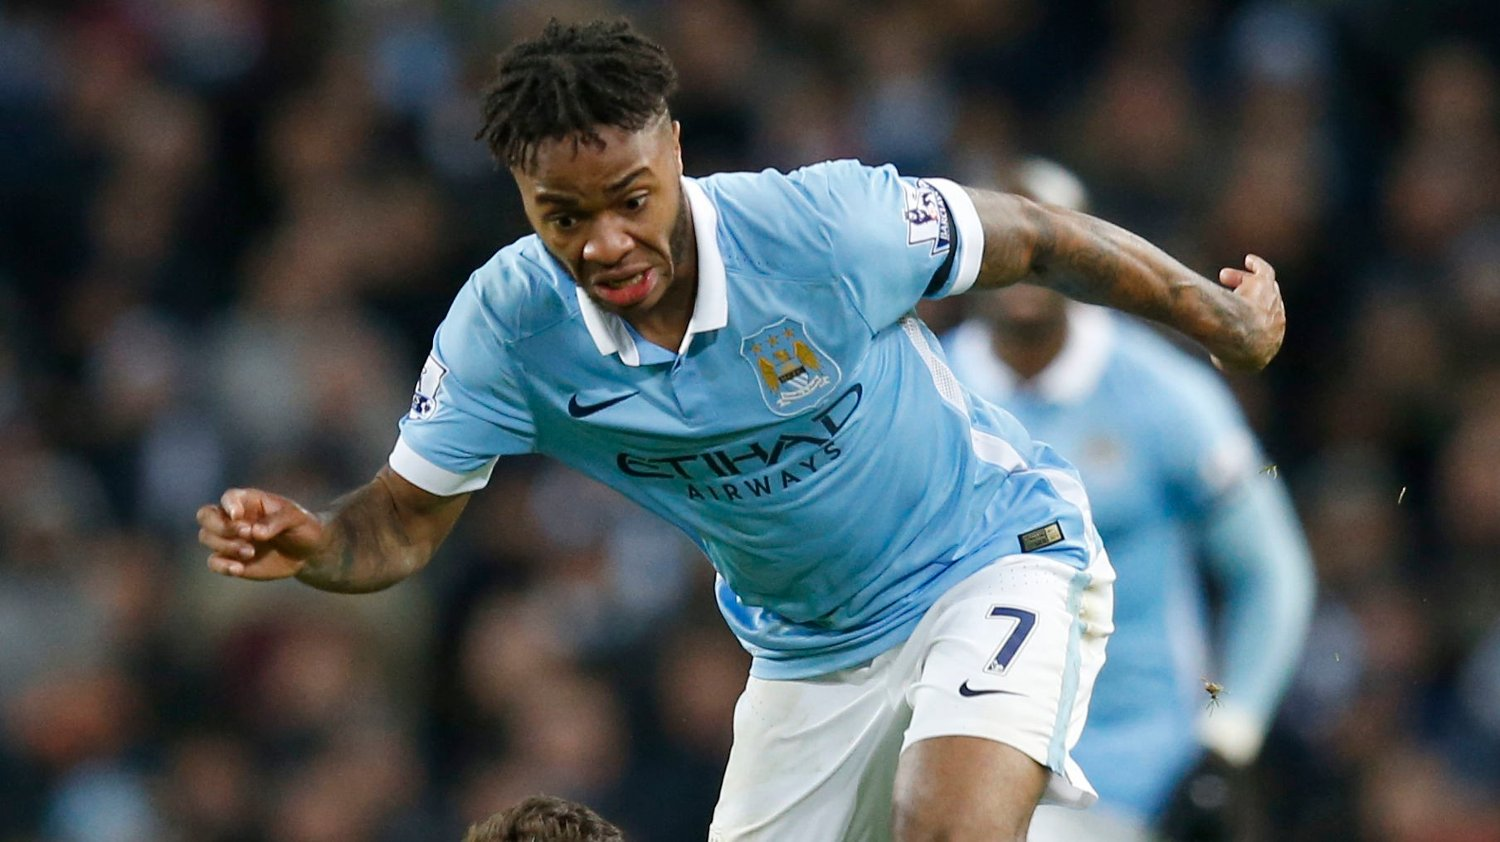 Sterling og Manchester City tapte 4-1 for Liverpool lørdag.